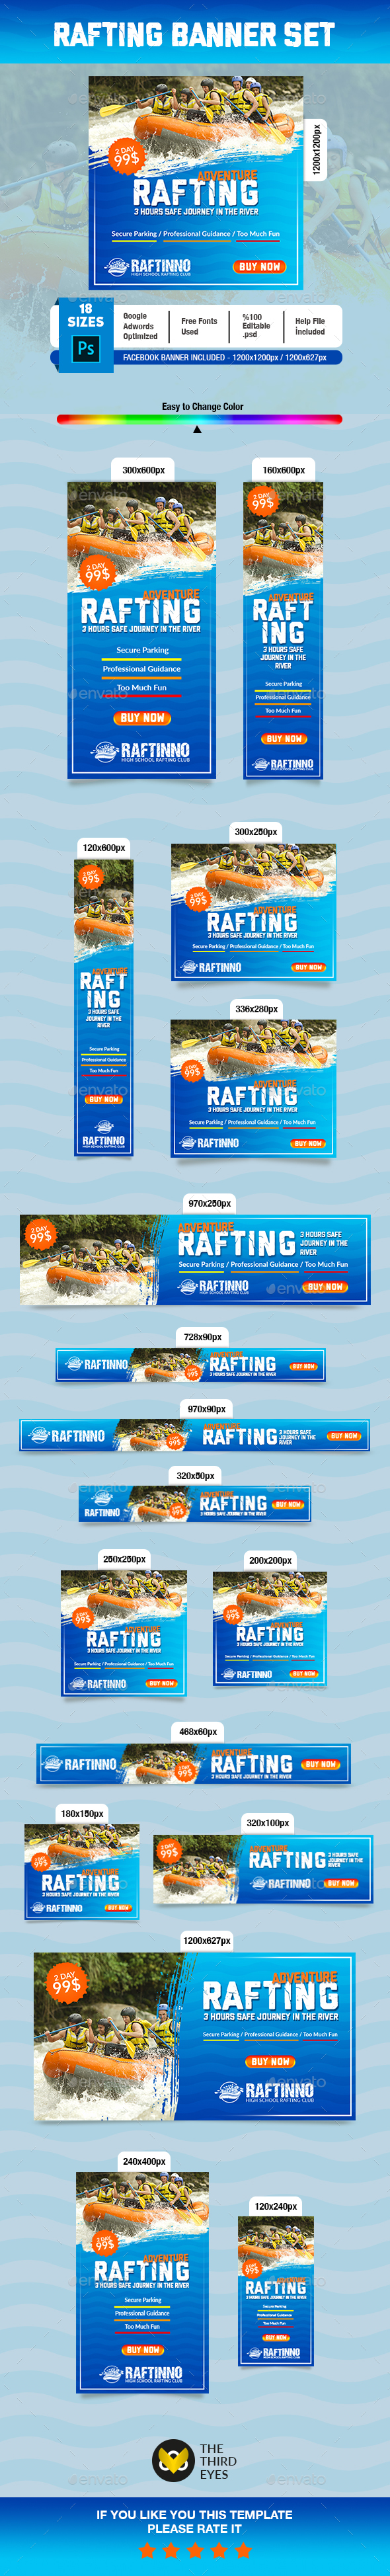 Rafting Banner - Banners & Ads Web Elements